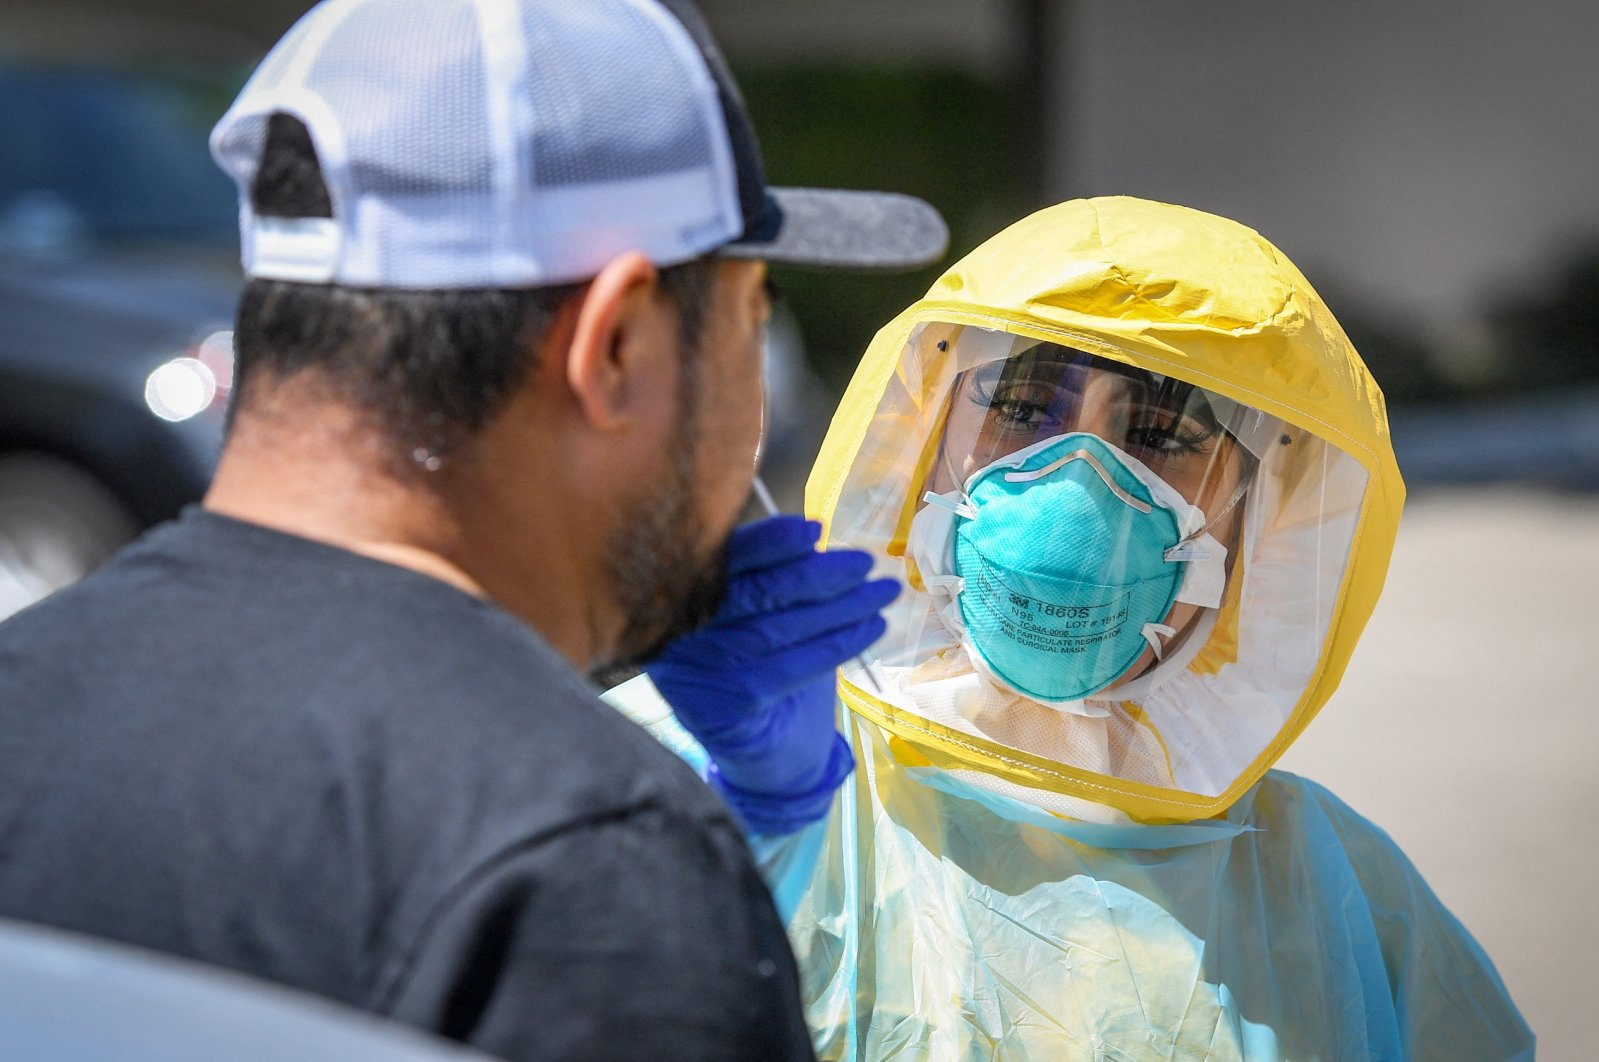 Certified medical assistant Selina Gomez from Clinica Sierra Vista in Fresno, tests a patient for COVID-19 at the drive-up testing area at the facility, Aug. 8, 2020. (CRAIG KOHLRUSS/The Fresno Bee/TNS/ABACAPRESS.COM via REUTERS)